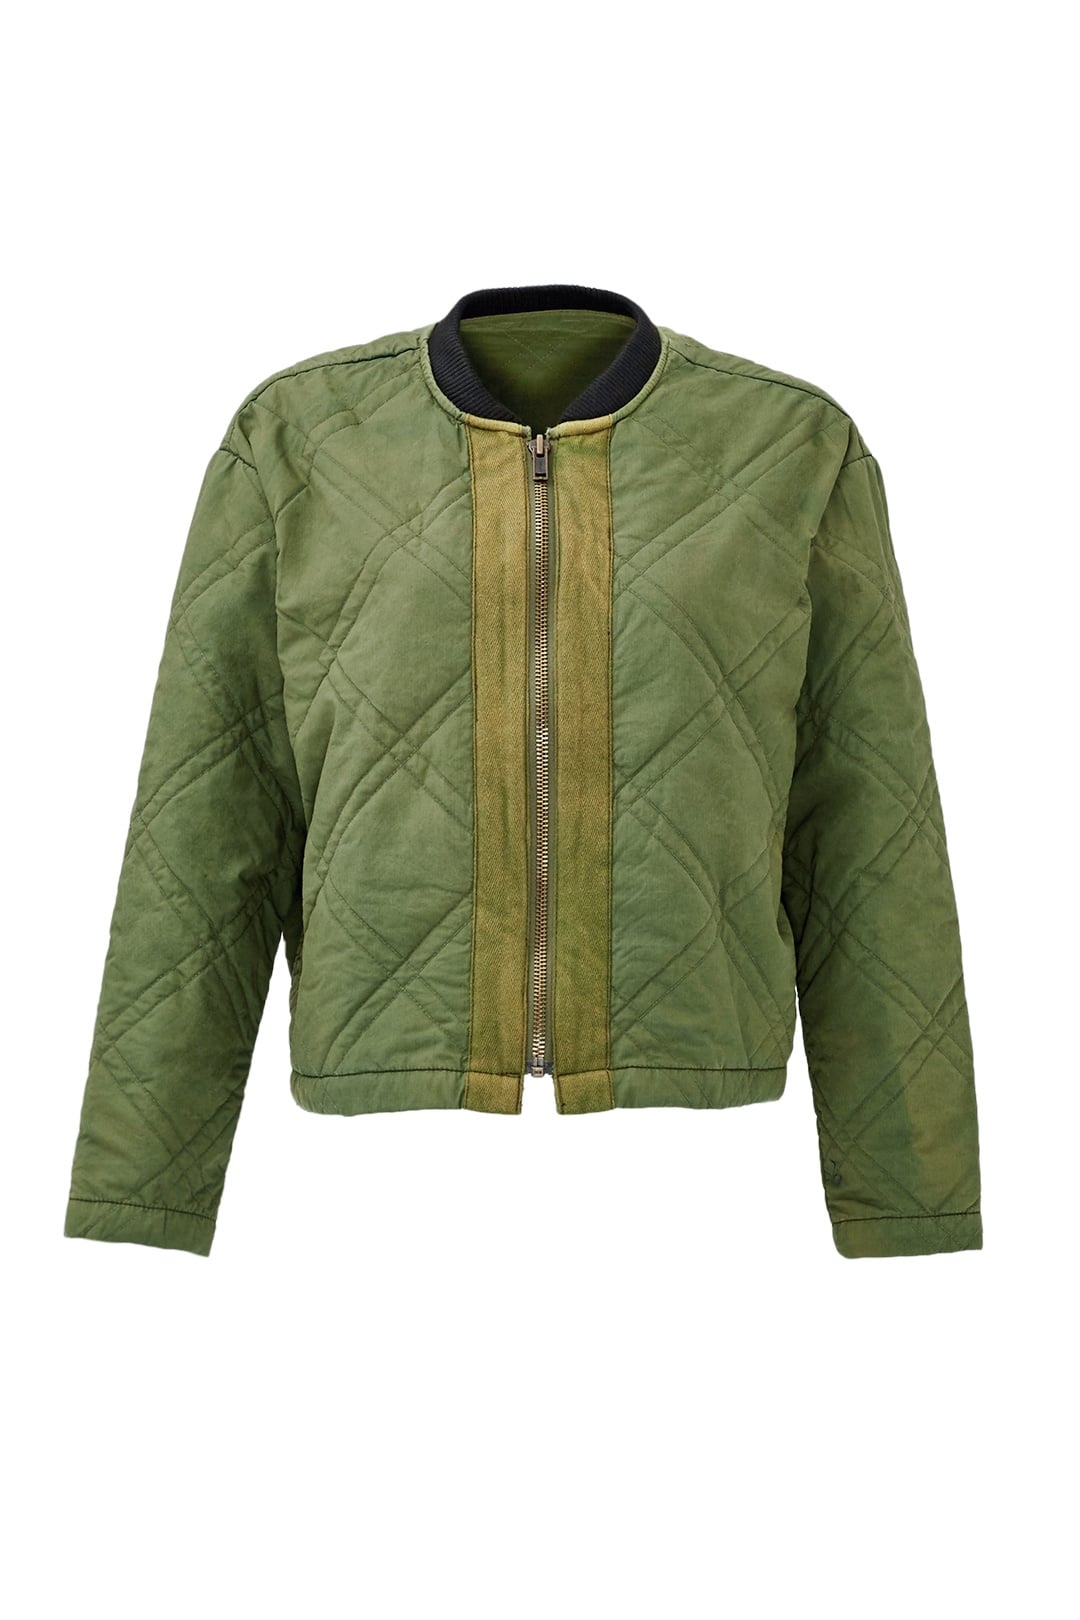 Free People Green Quilted Bomber ($45)